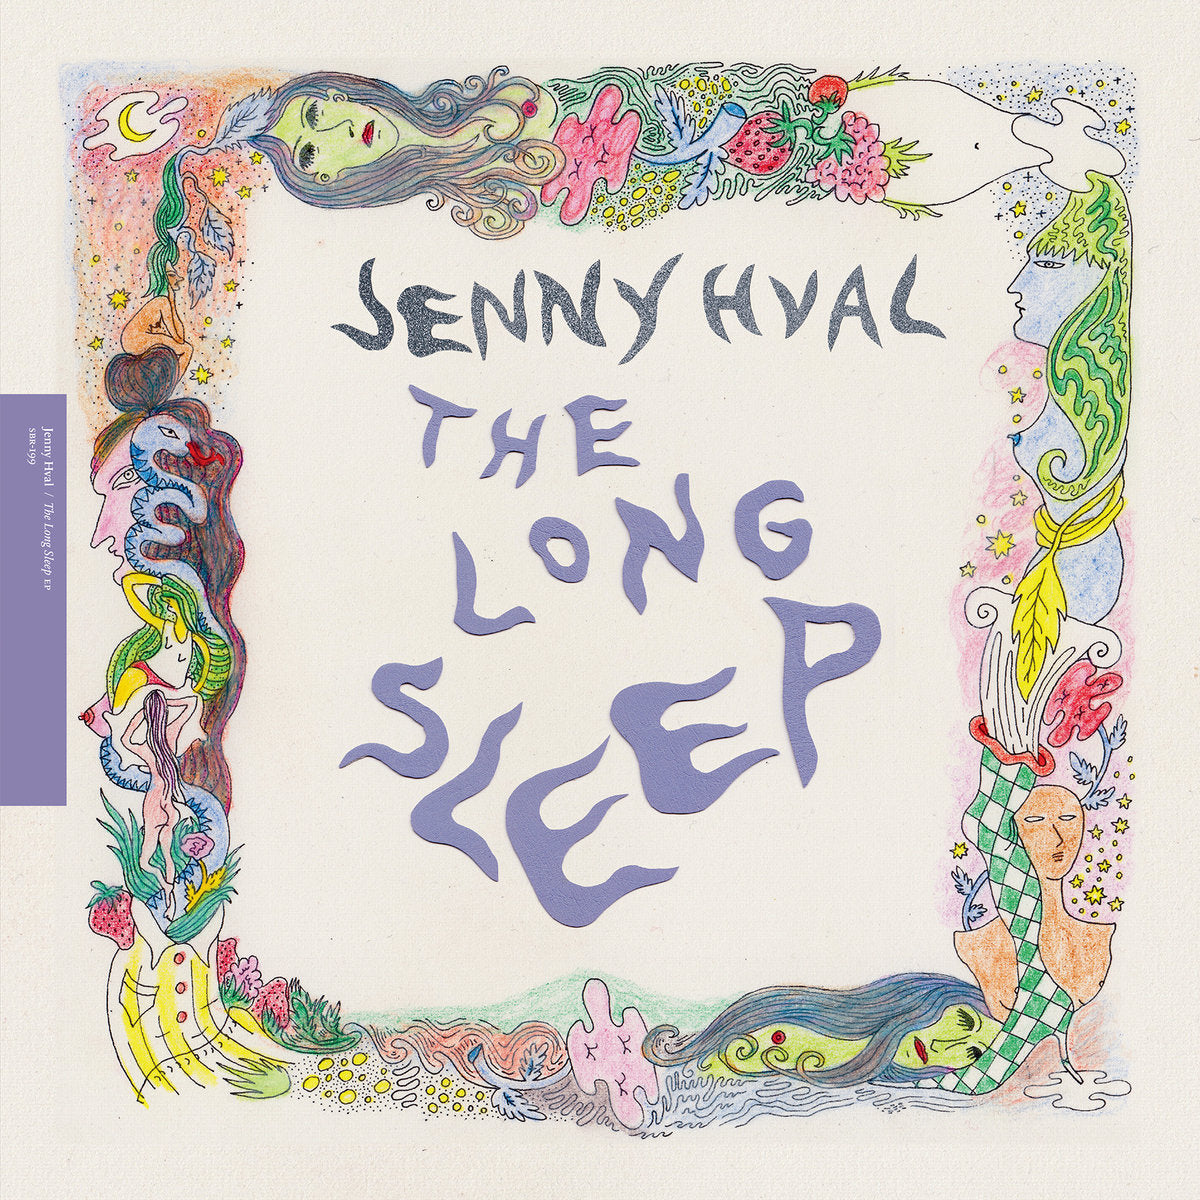 Jenny Hval - The Long Sleep EP 12""